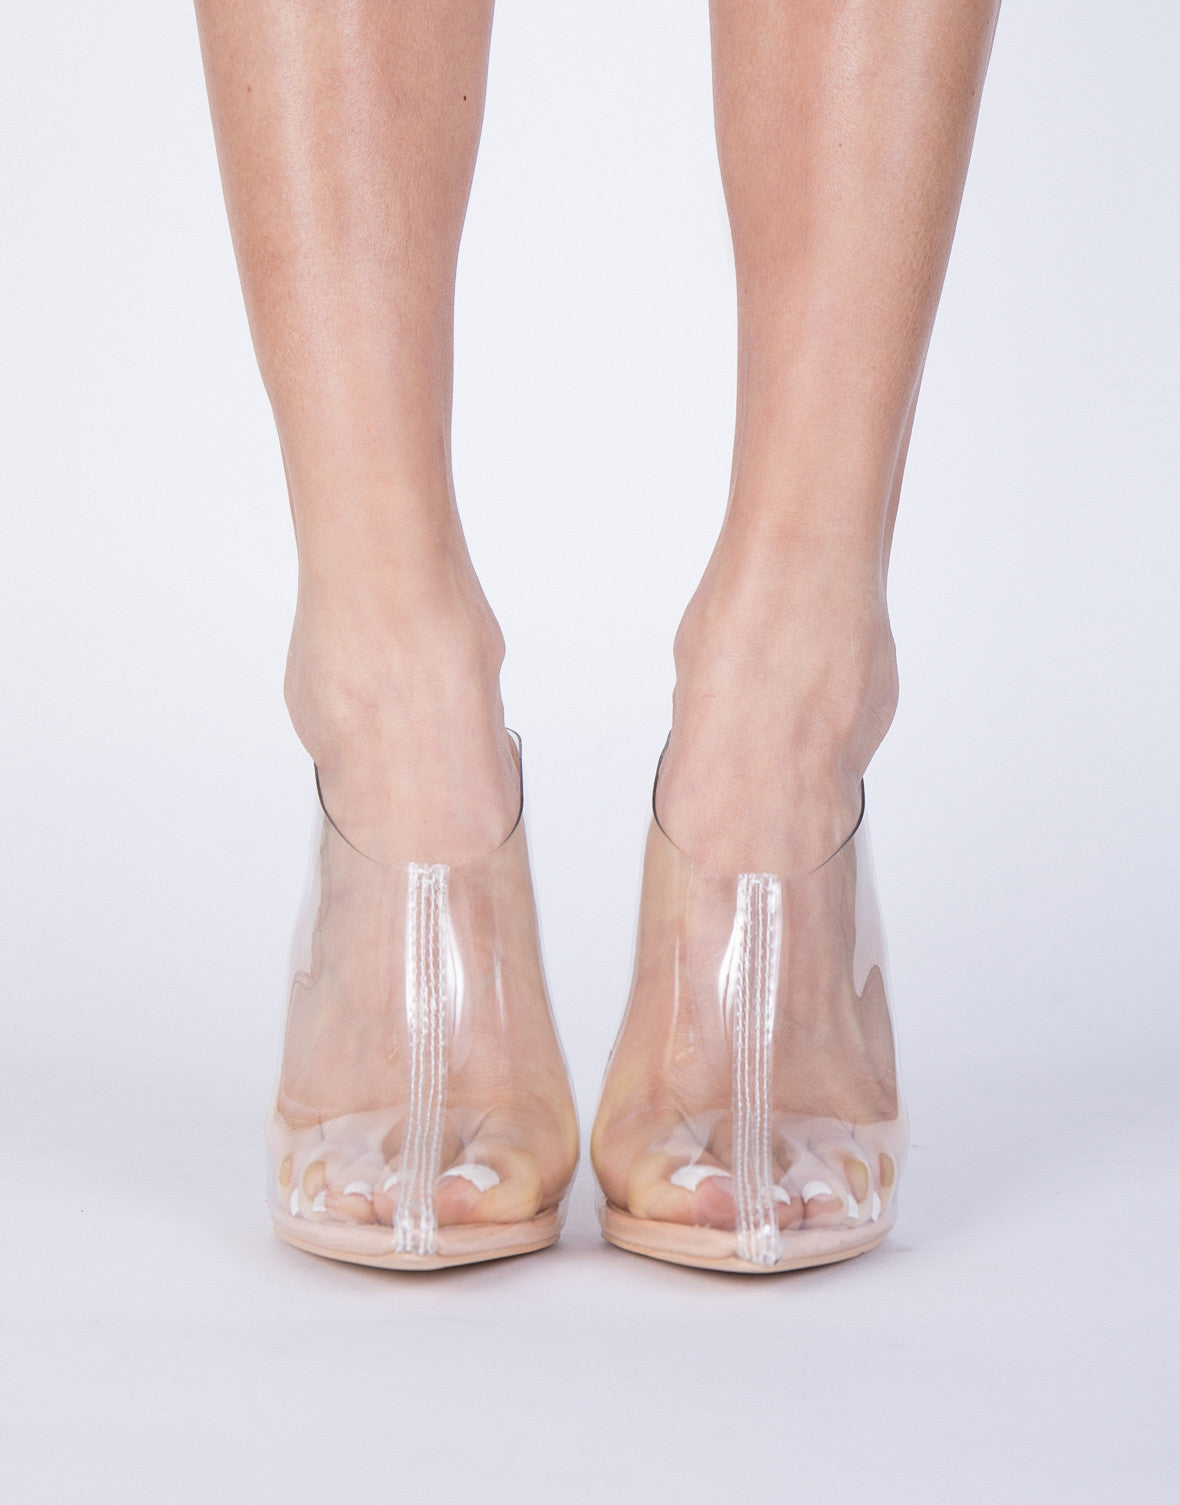 Point Clearly Heels - Clear Lucite Heels - Clear Mule Slide Heels ...